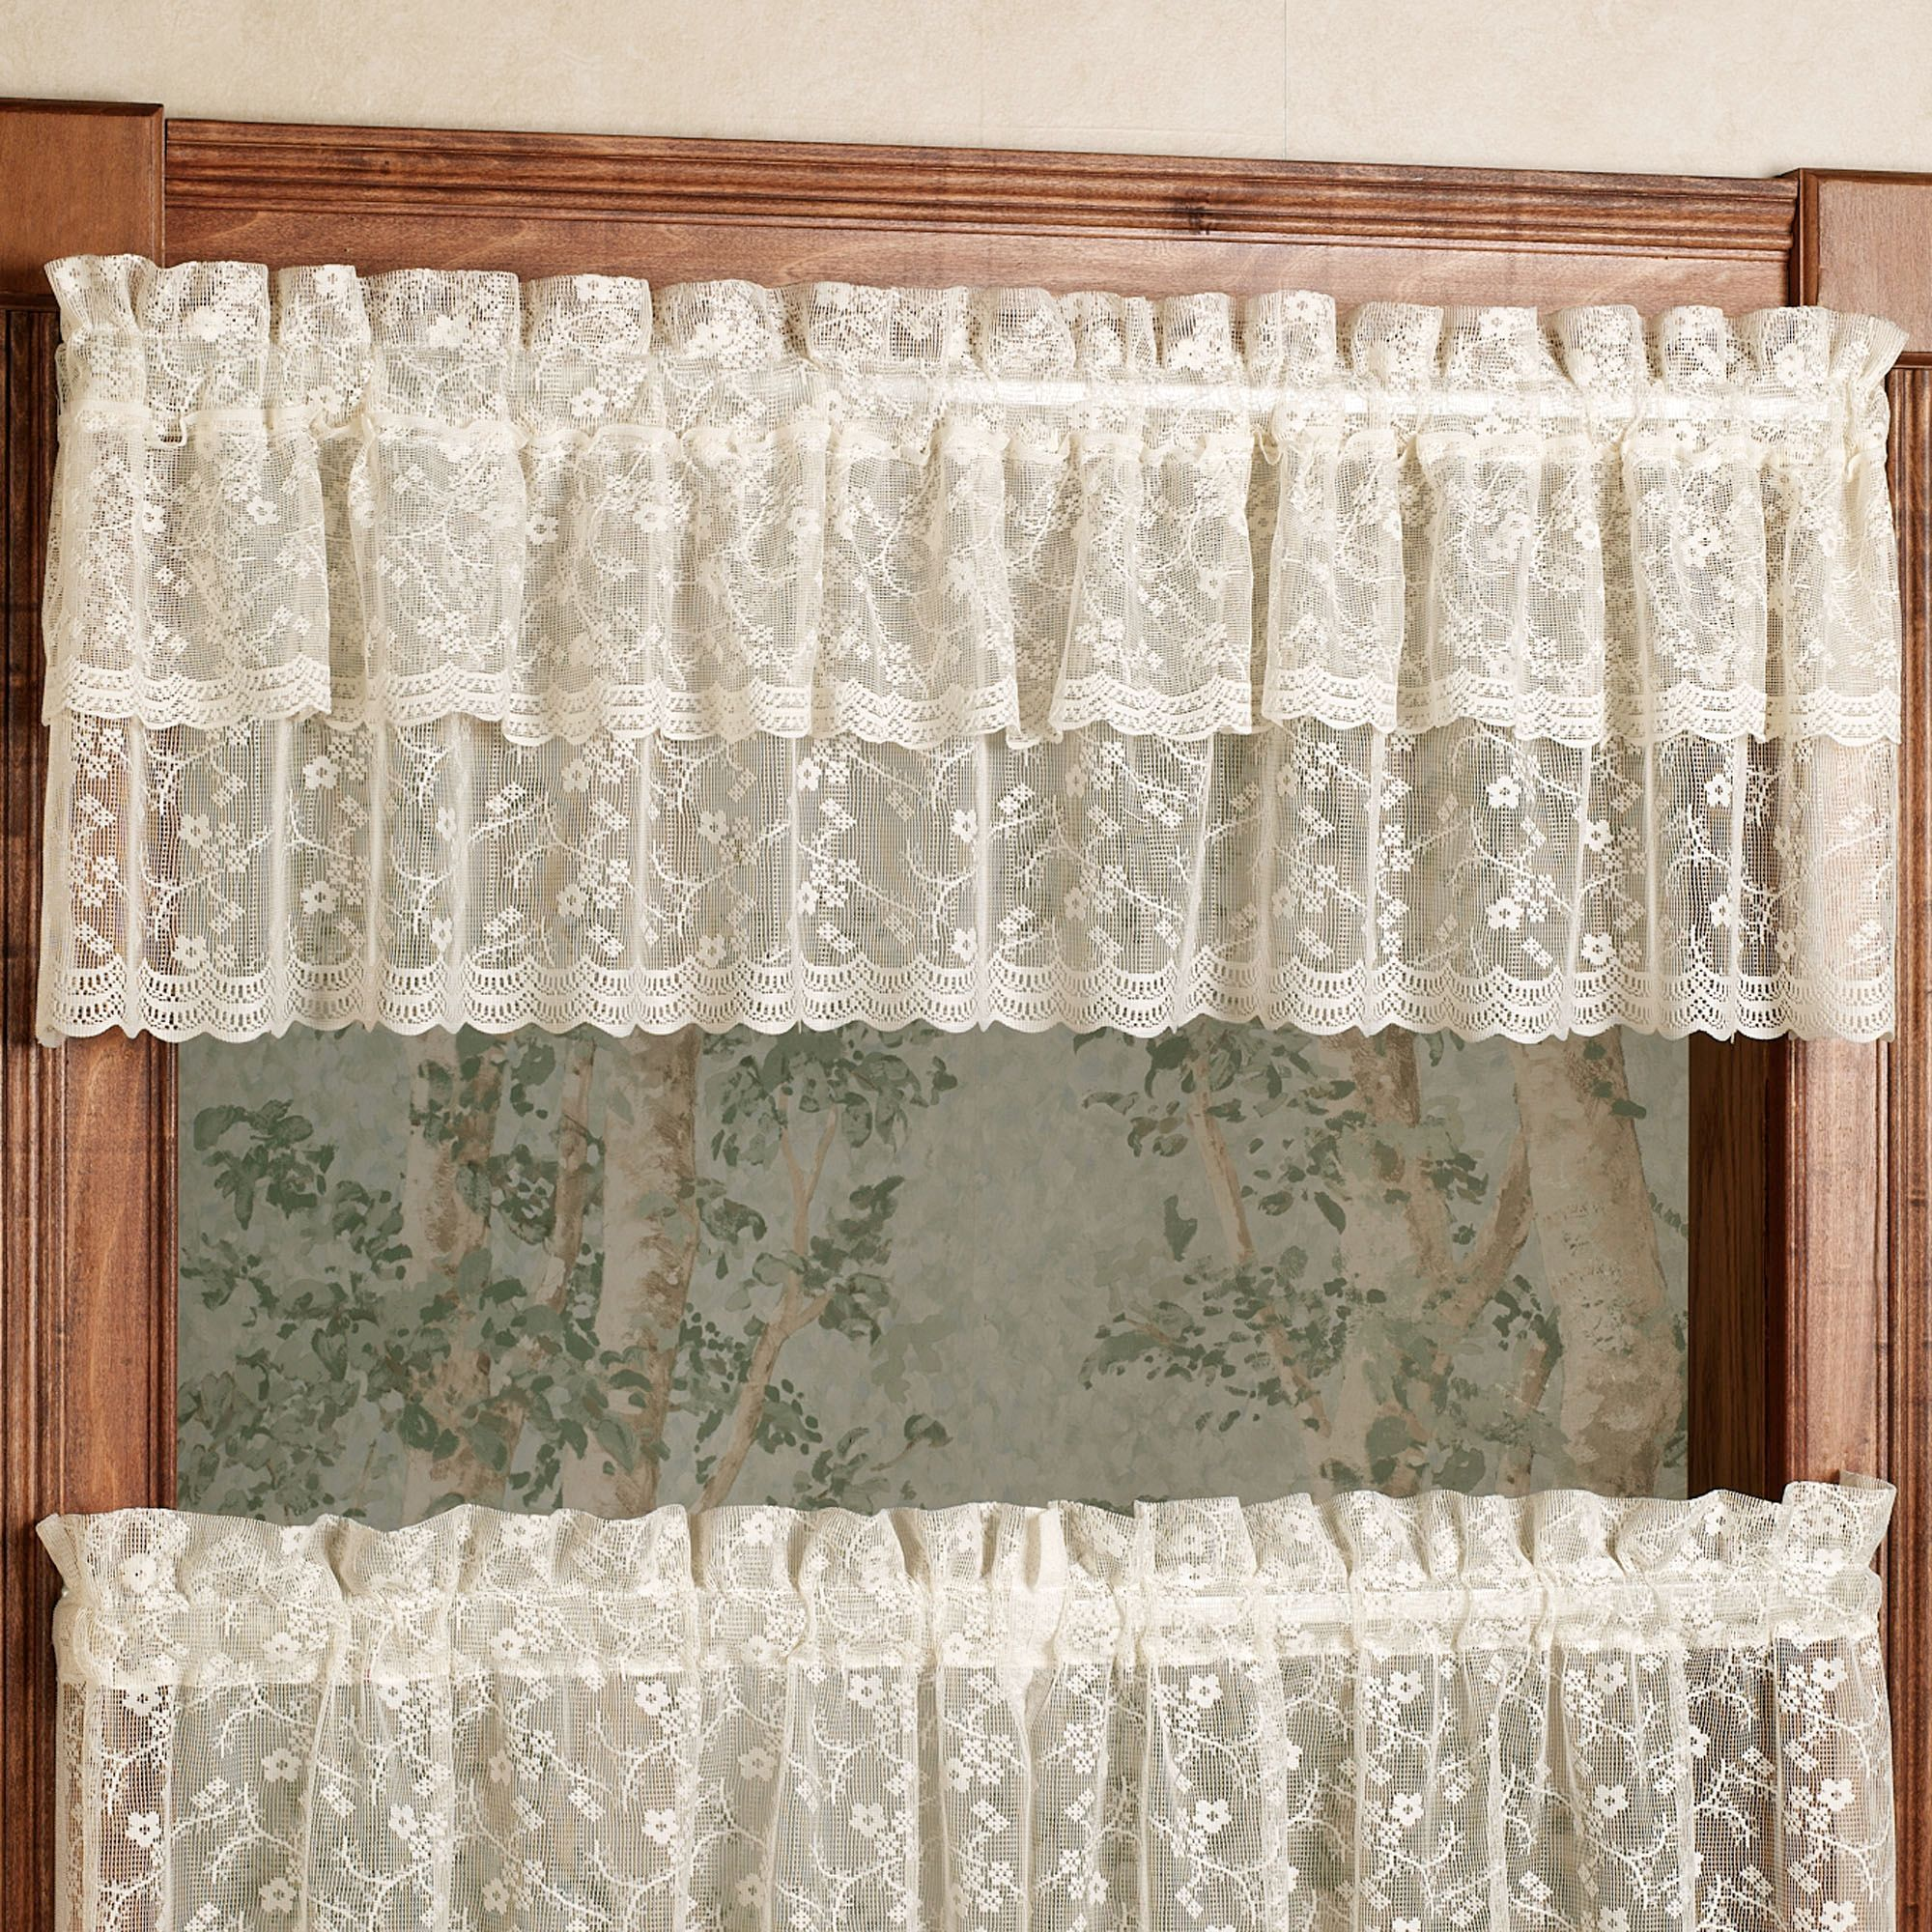 Bridal Lace Ruffled Valance 60 X 12 Ruffle Curtains Curtains